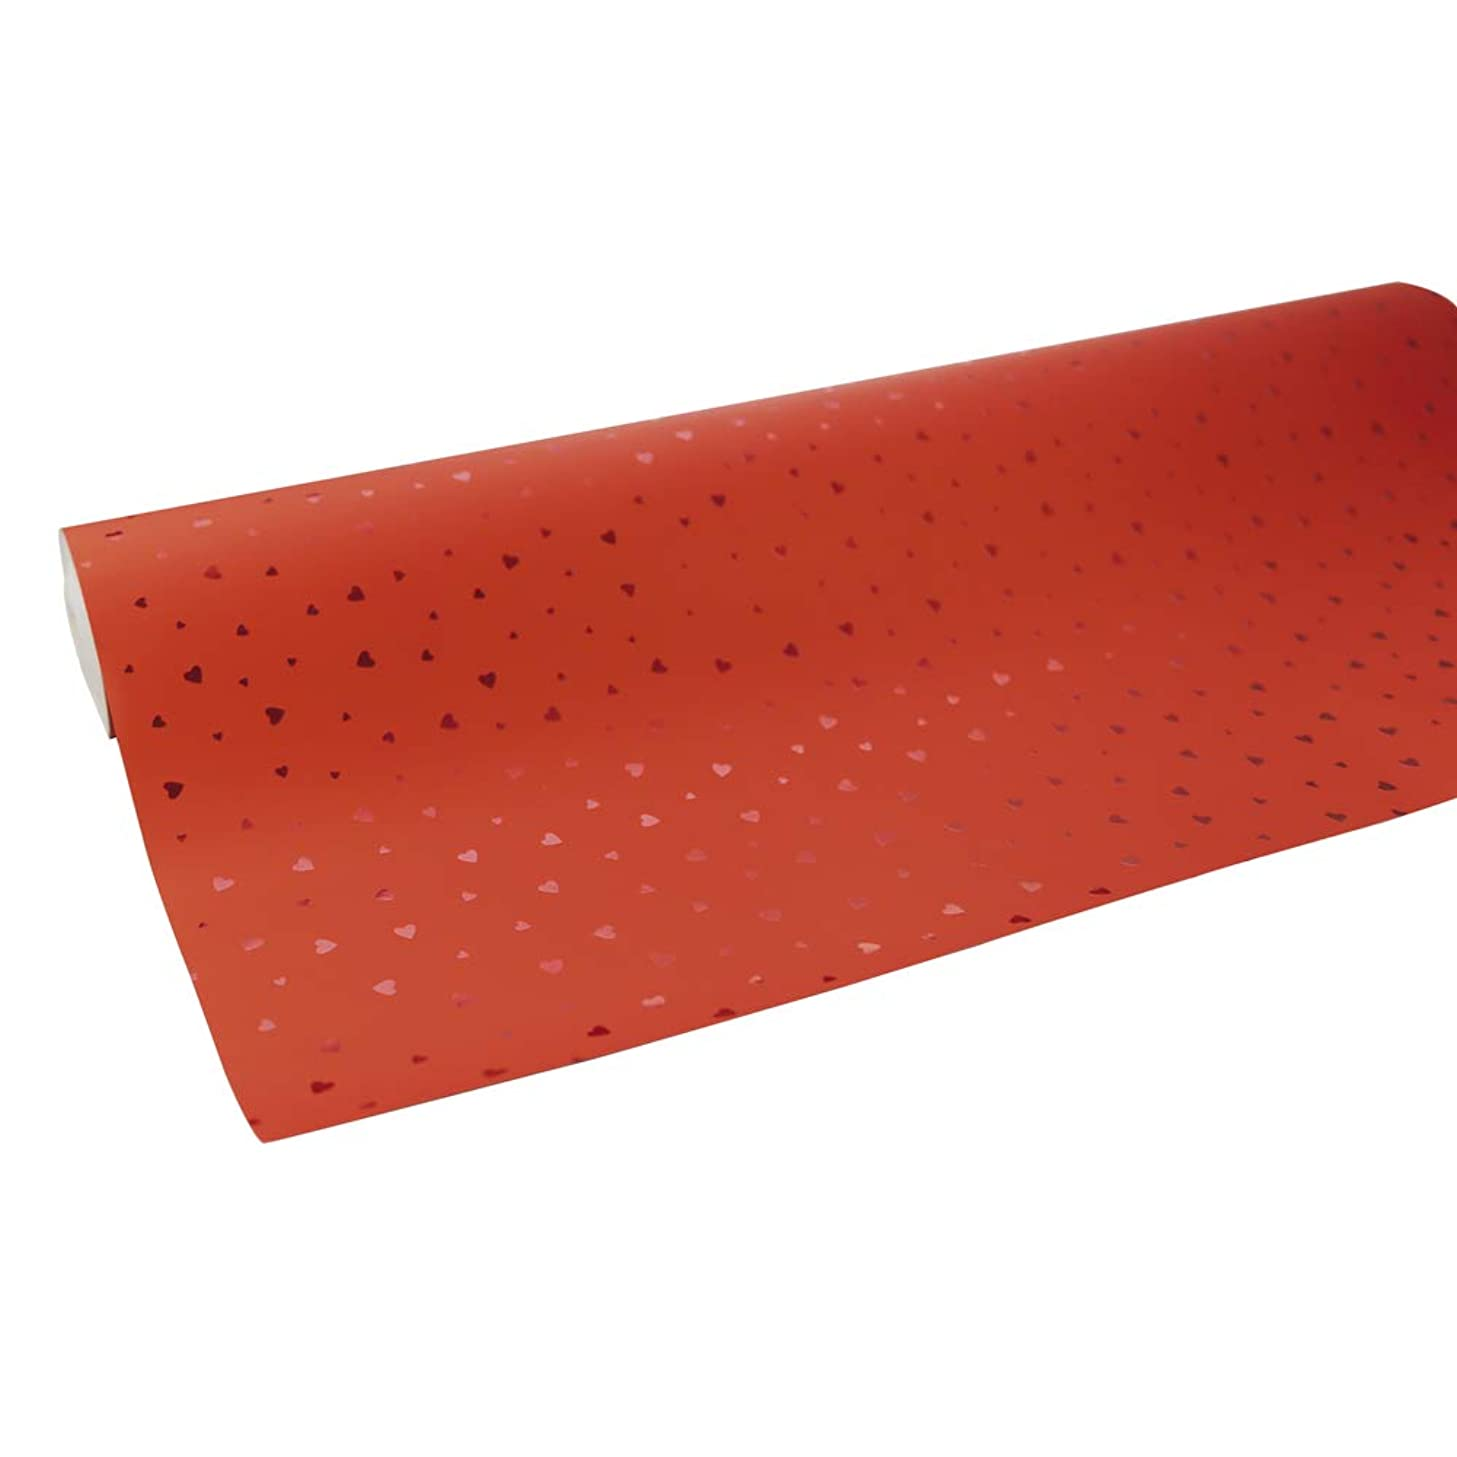 Clairefontaine 50 m x 0.70 m Premium Long Roll Wrapping Paper, Red Hearts